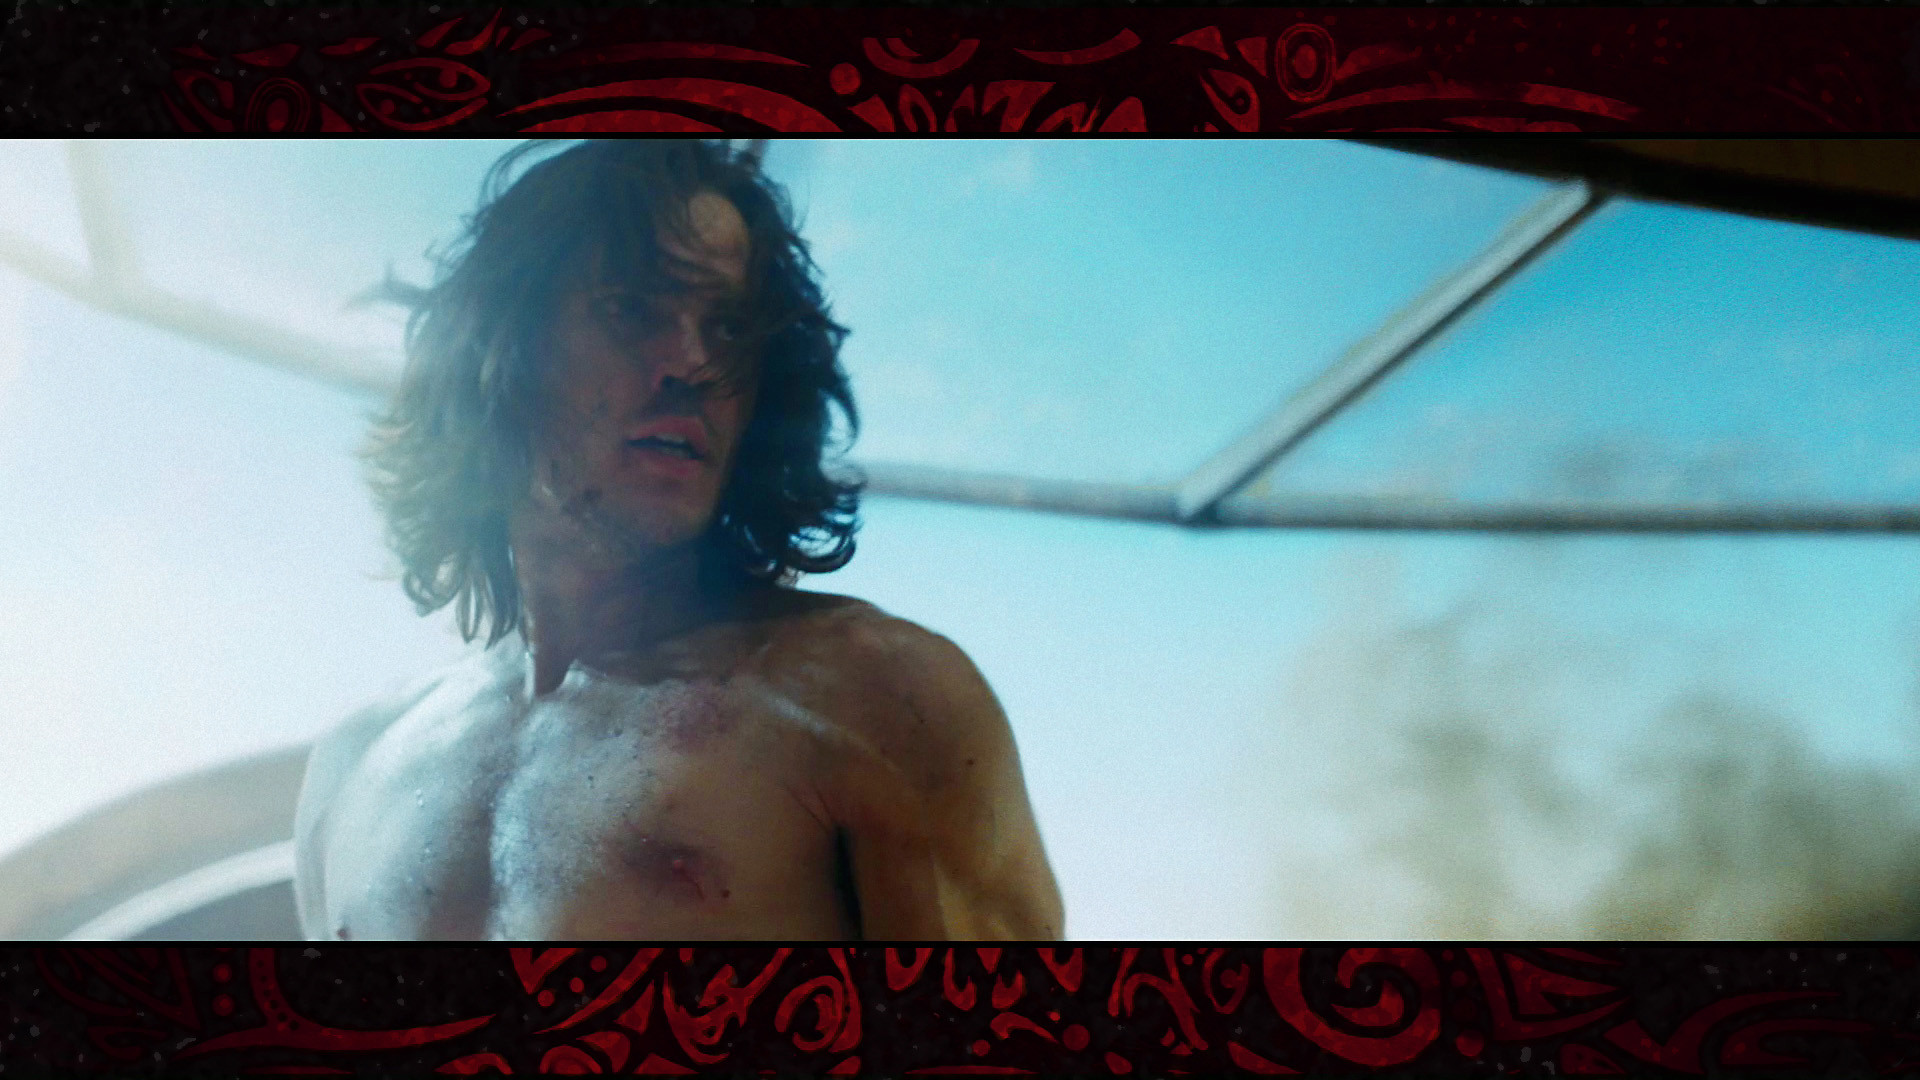 Res: 1920x1080, John Carter ( Movie 2012 ) images john carter wallpapers HD wallpaper and  background photos